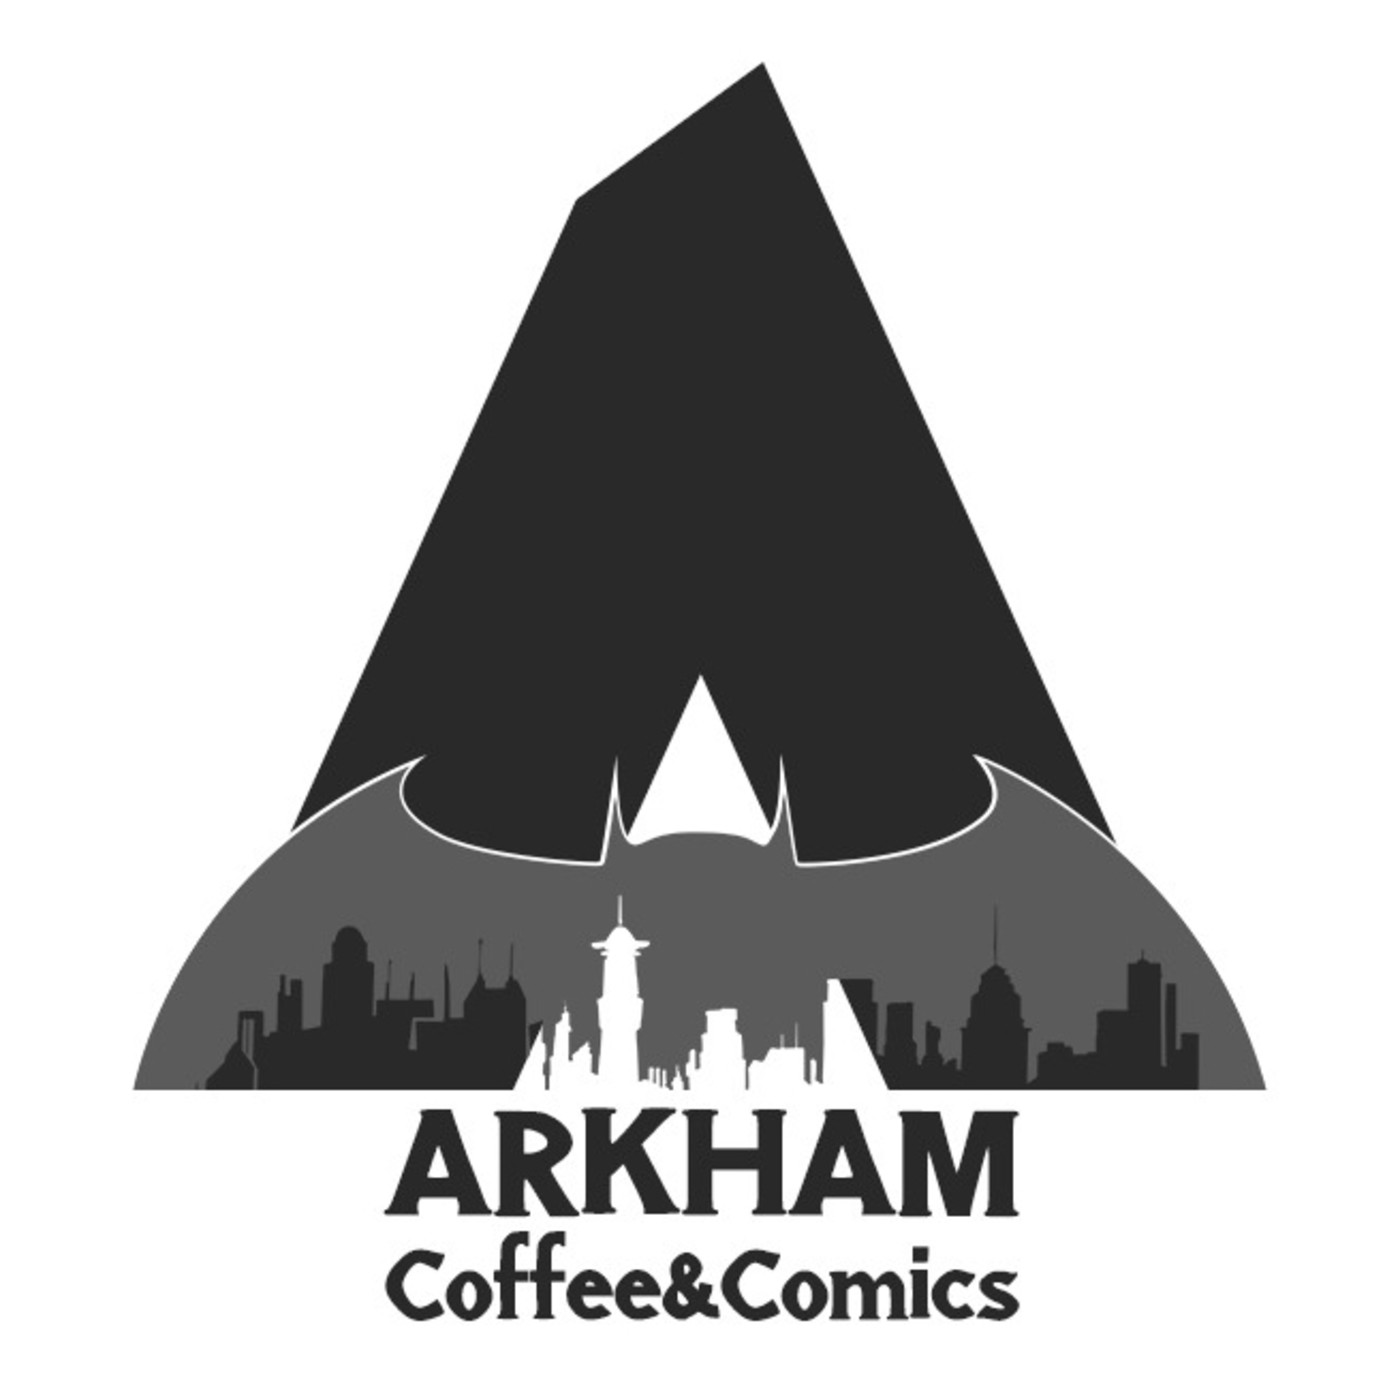 Arkham coffee and comics